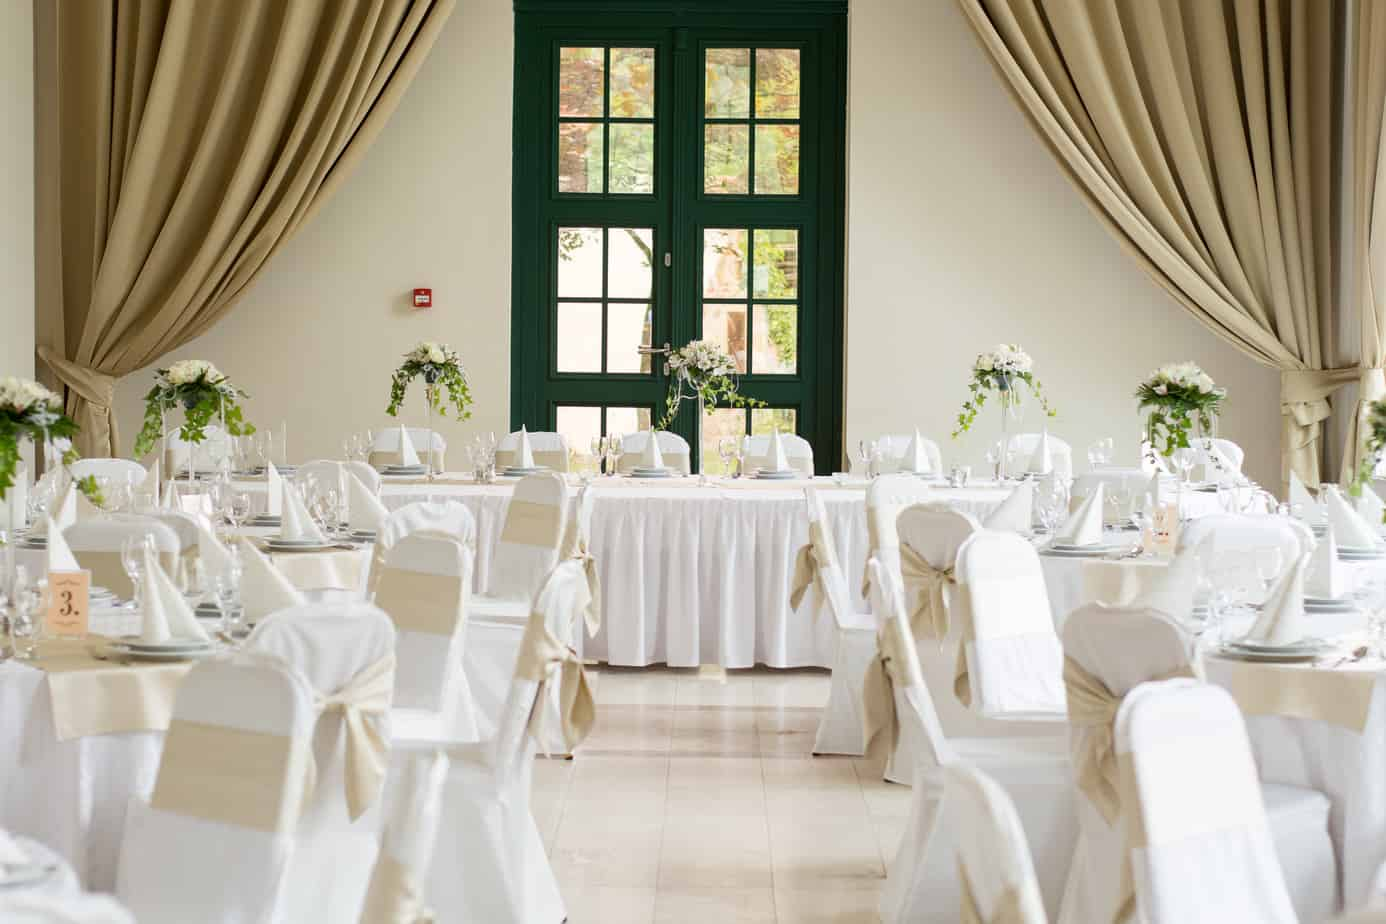 View Larger Image & An Easy Table Setting Guide for Formal Events - Pico Party Rentals